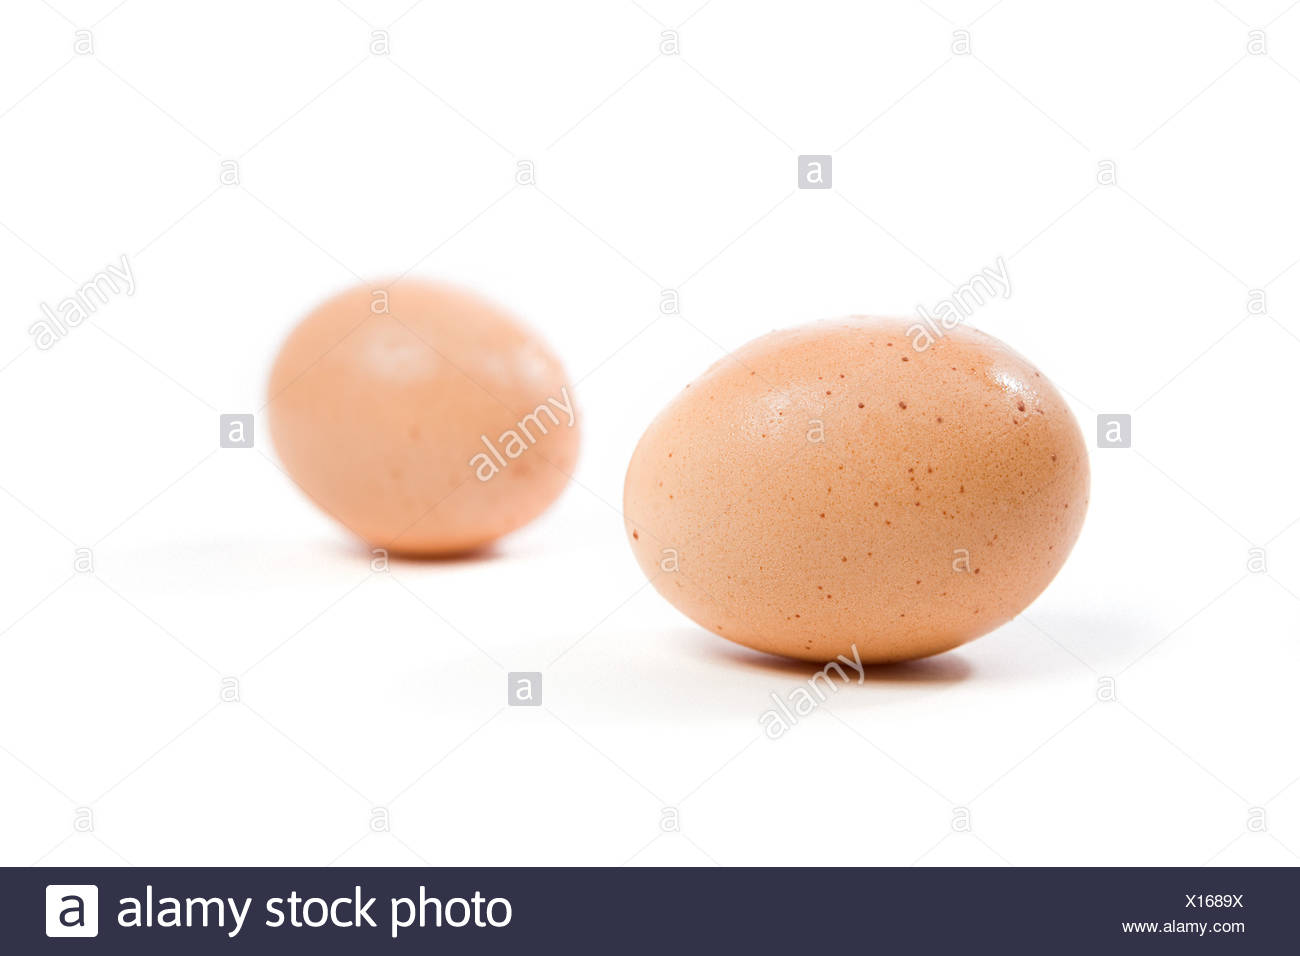 Two eggs - Stock Image